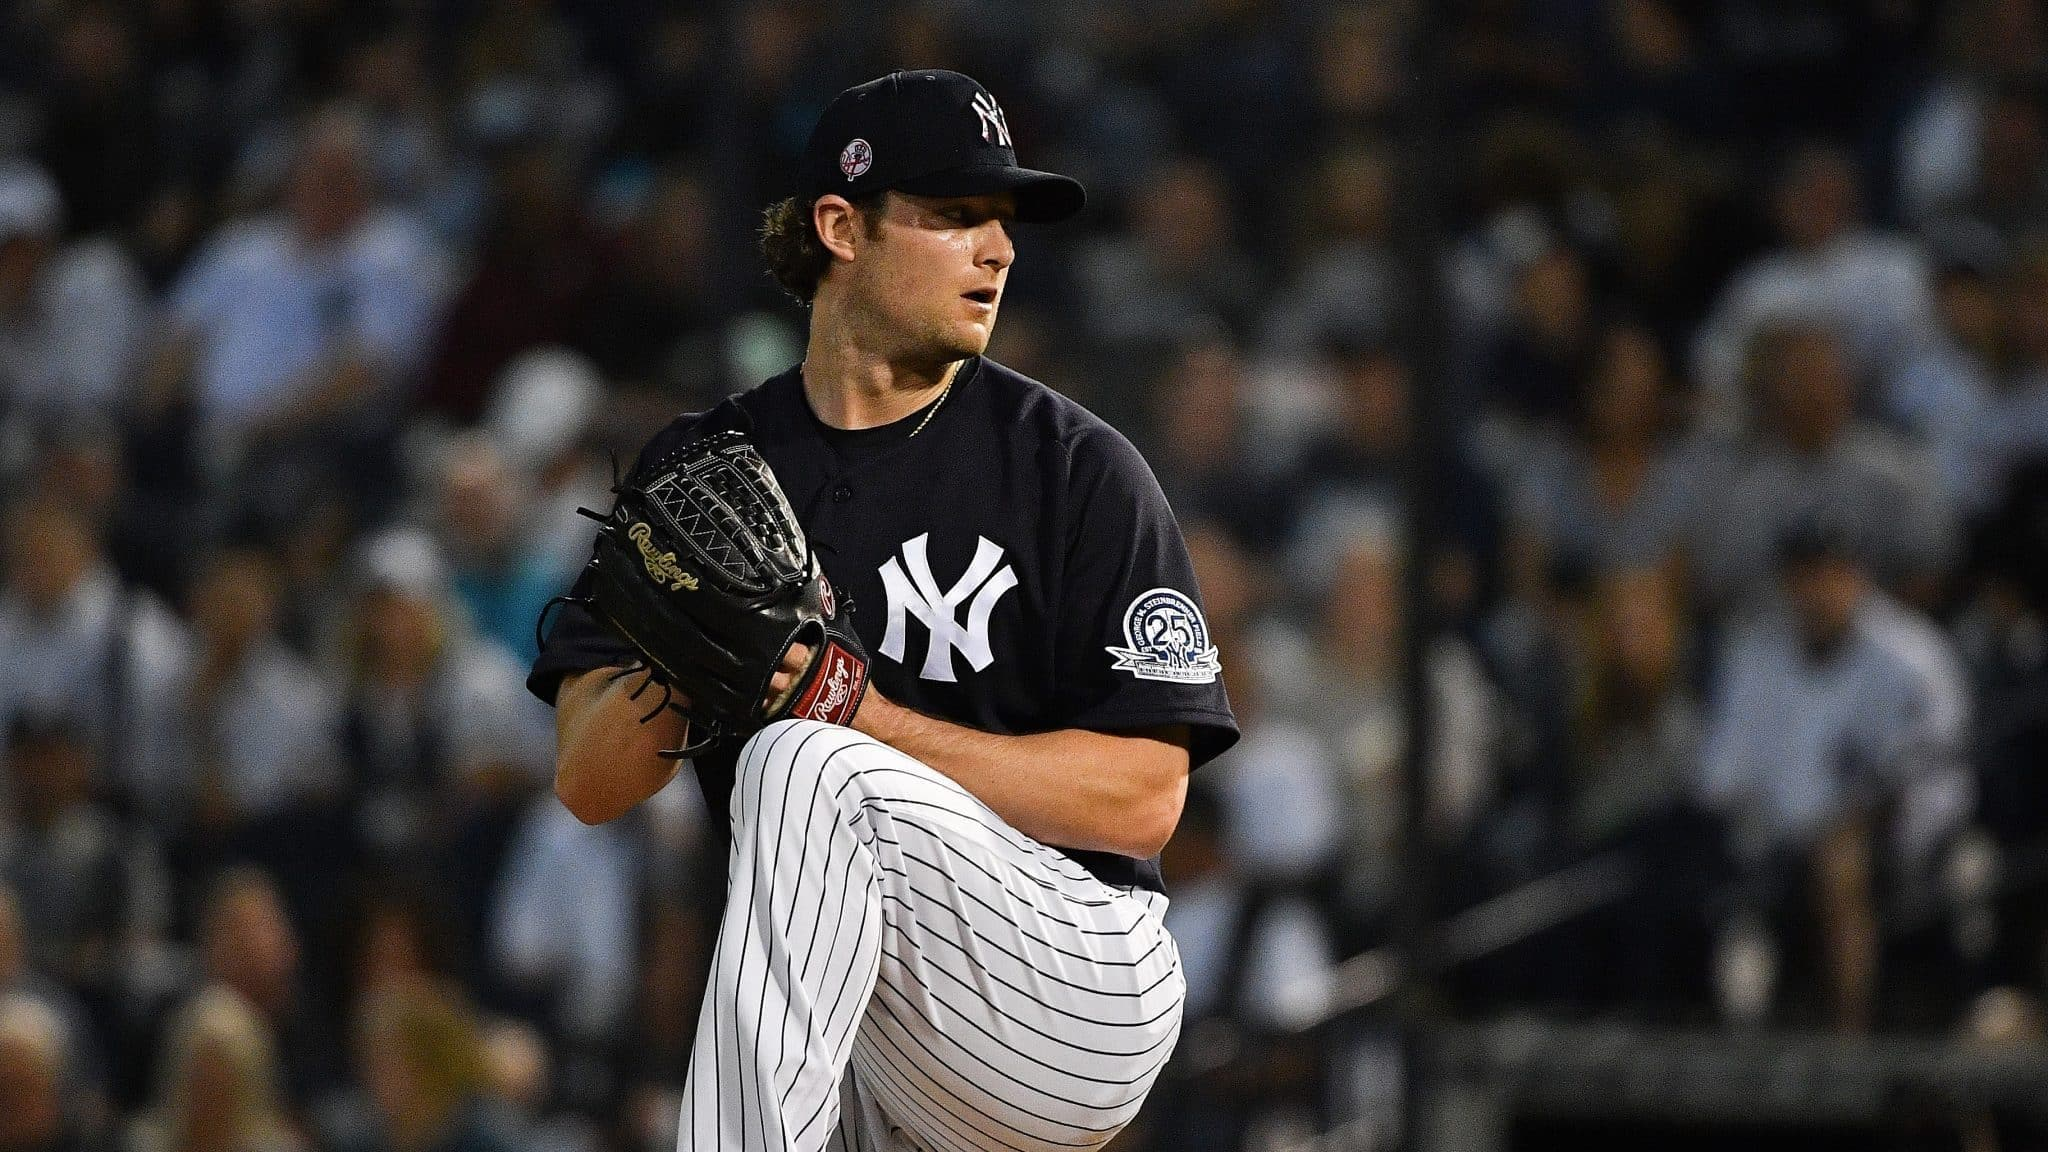 New York Yankees, Cy Young pitcher, Gerrit Cole on the mound ready to pitch